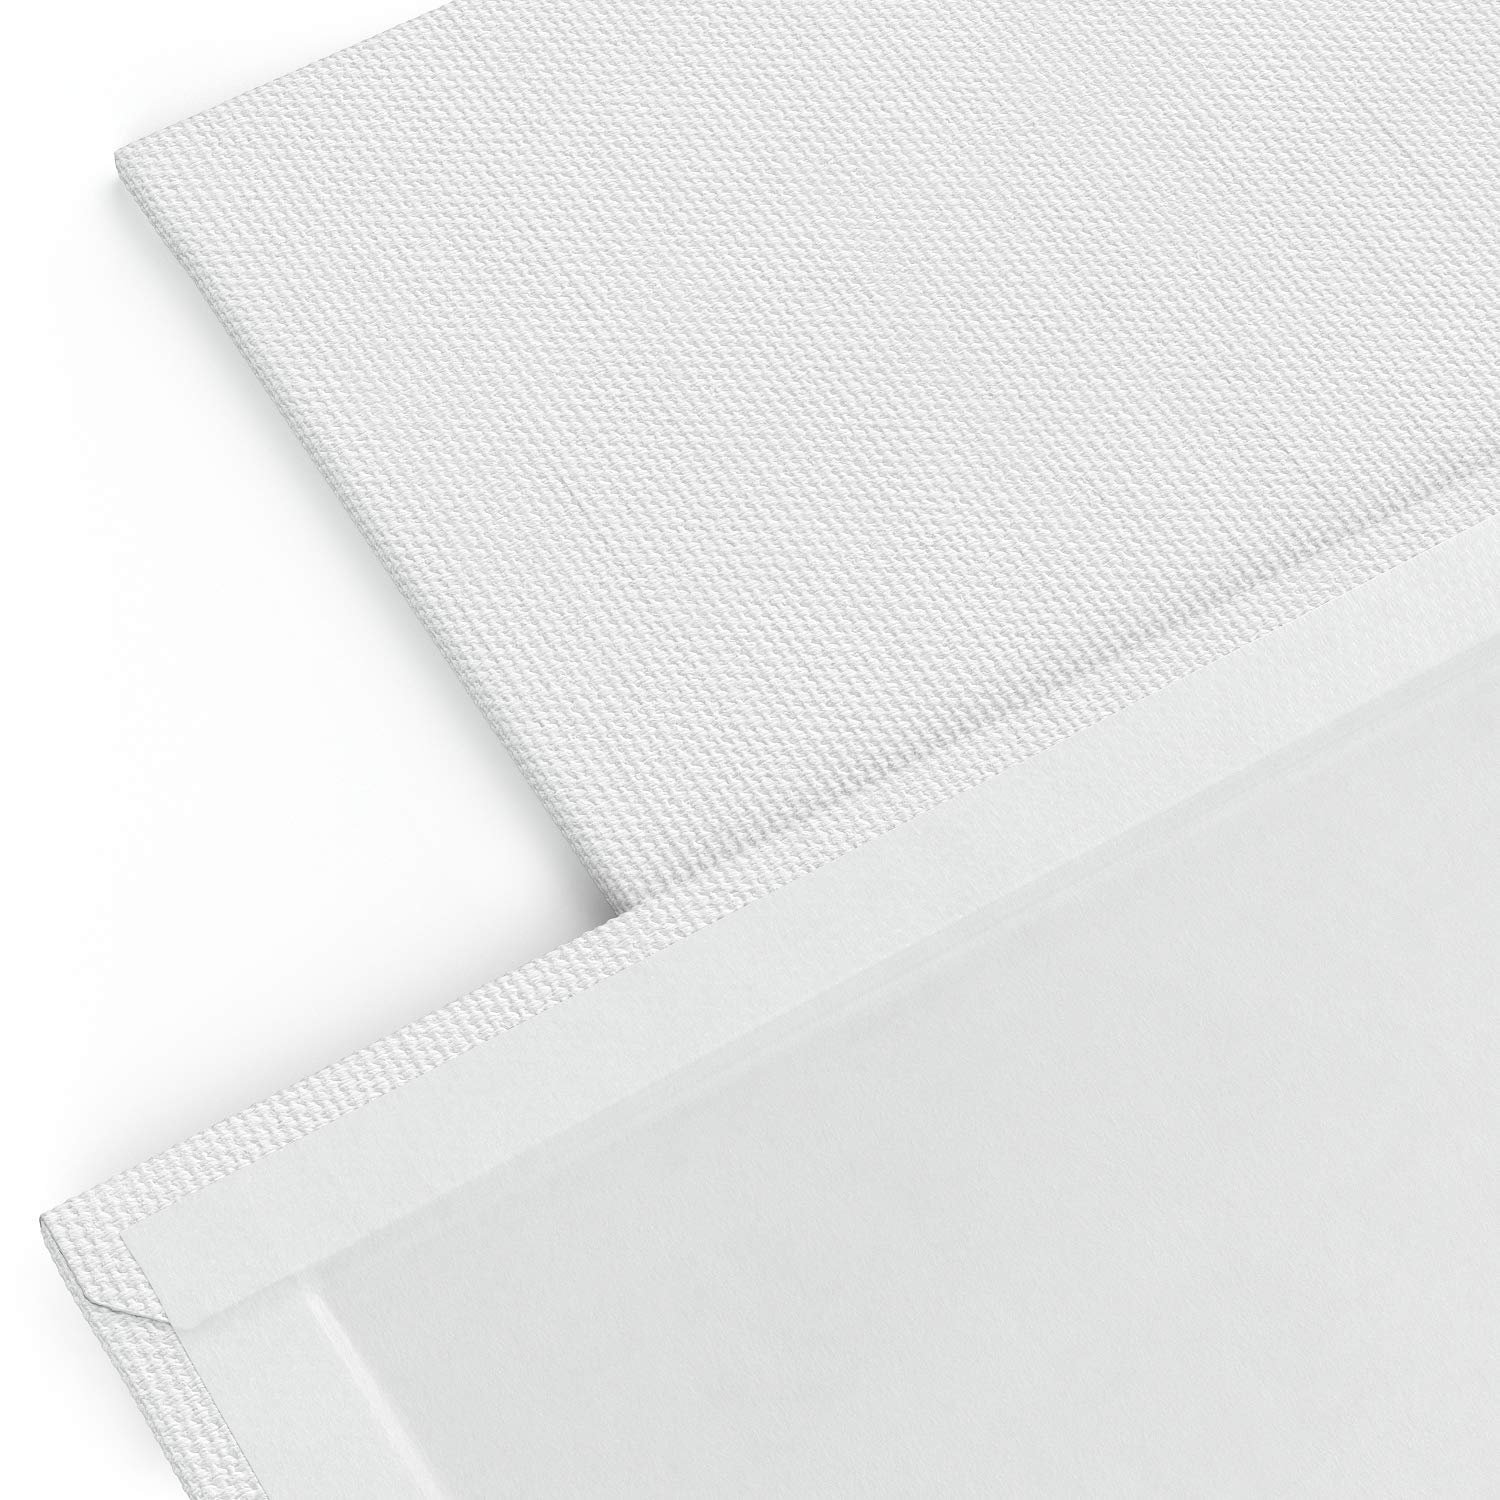 100/% Cotton 12.3 oz Primed 7 oz Unprimed Acid-Free Set of 28 6x6 White Blank Square 8x8 Arteza Canvas Panels Multi-Pack for Acrylic /& Oil Painting 12x12 Inch 10x10